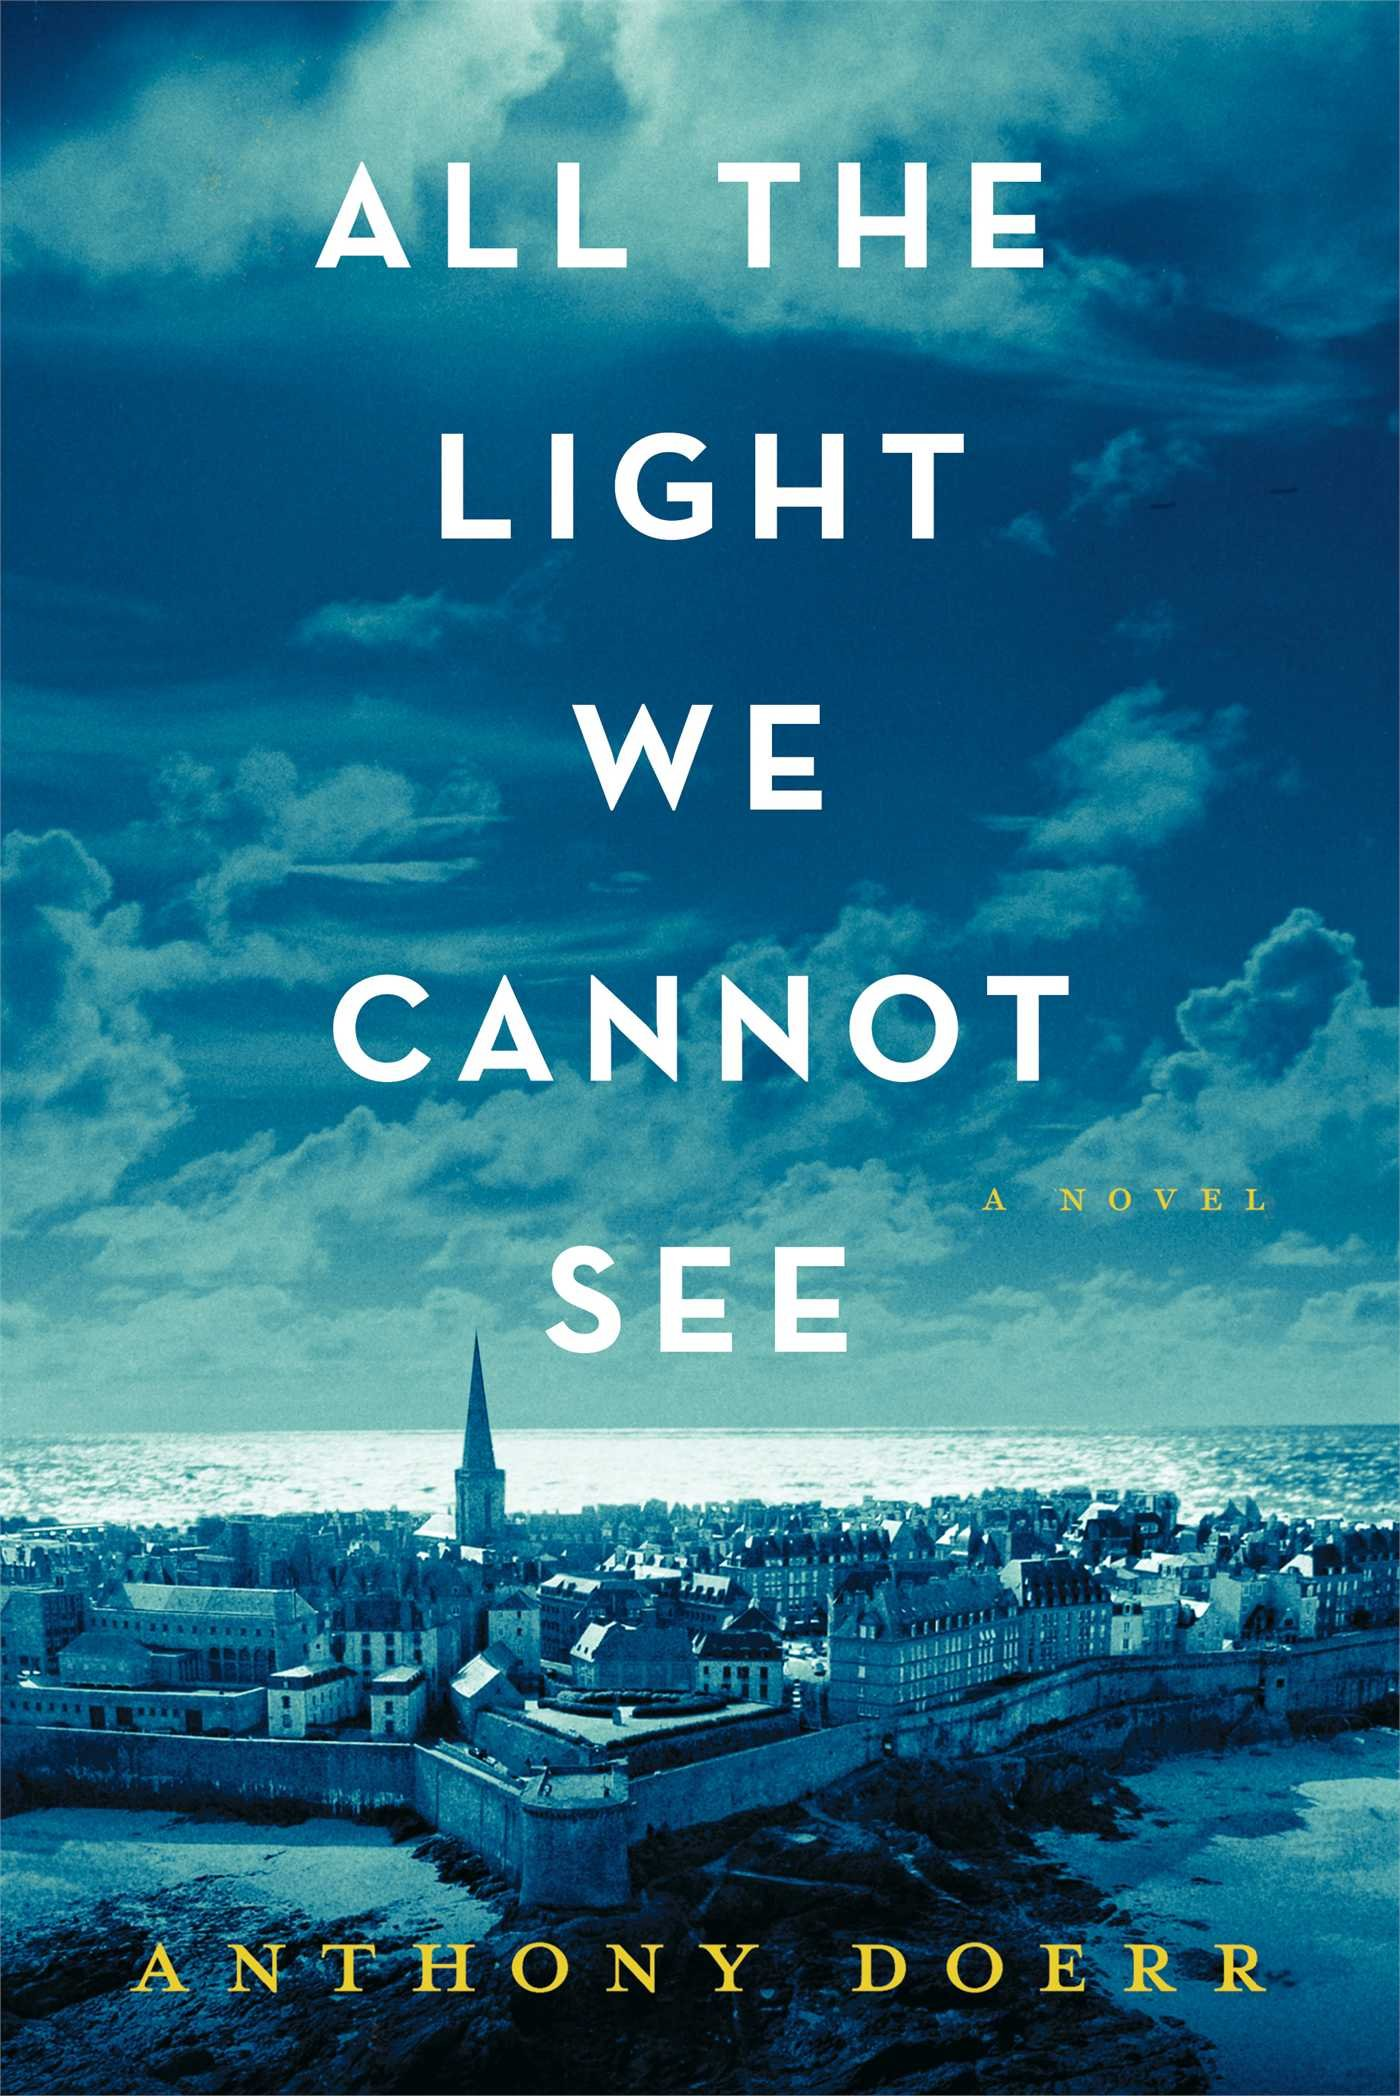 Book-Cover-Image-All-the-Light-We-Cannot-See